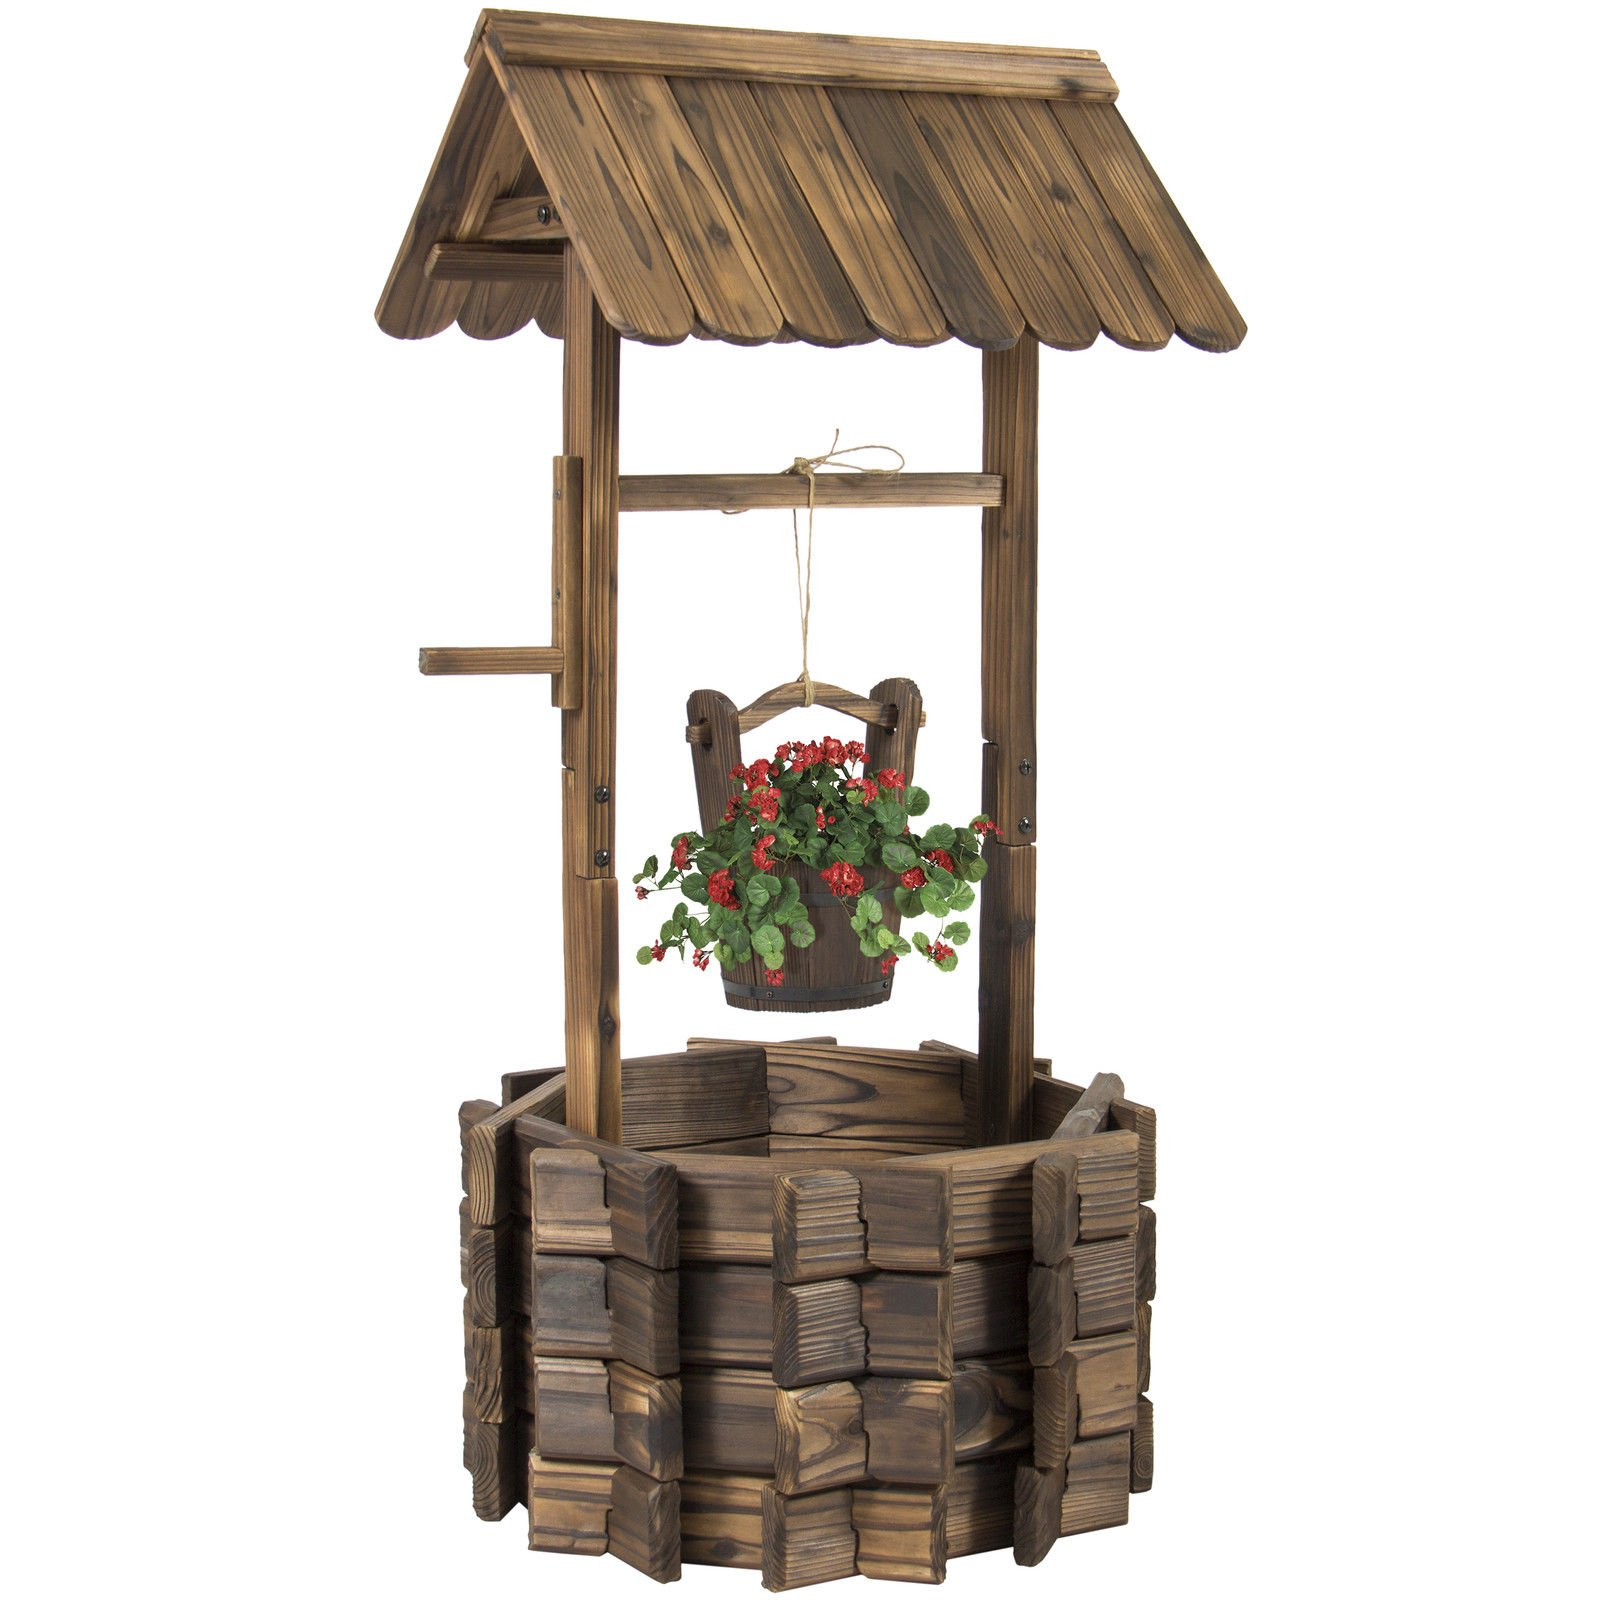 LA BOVA Wooden Wishing Well Bucket Flower Planter Patio Garden Outdoor Home Decor by LA BOVA